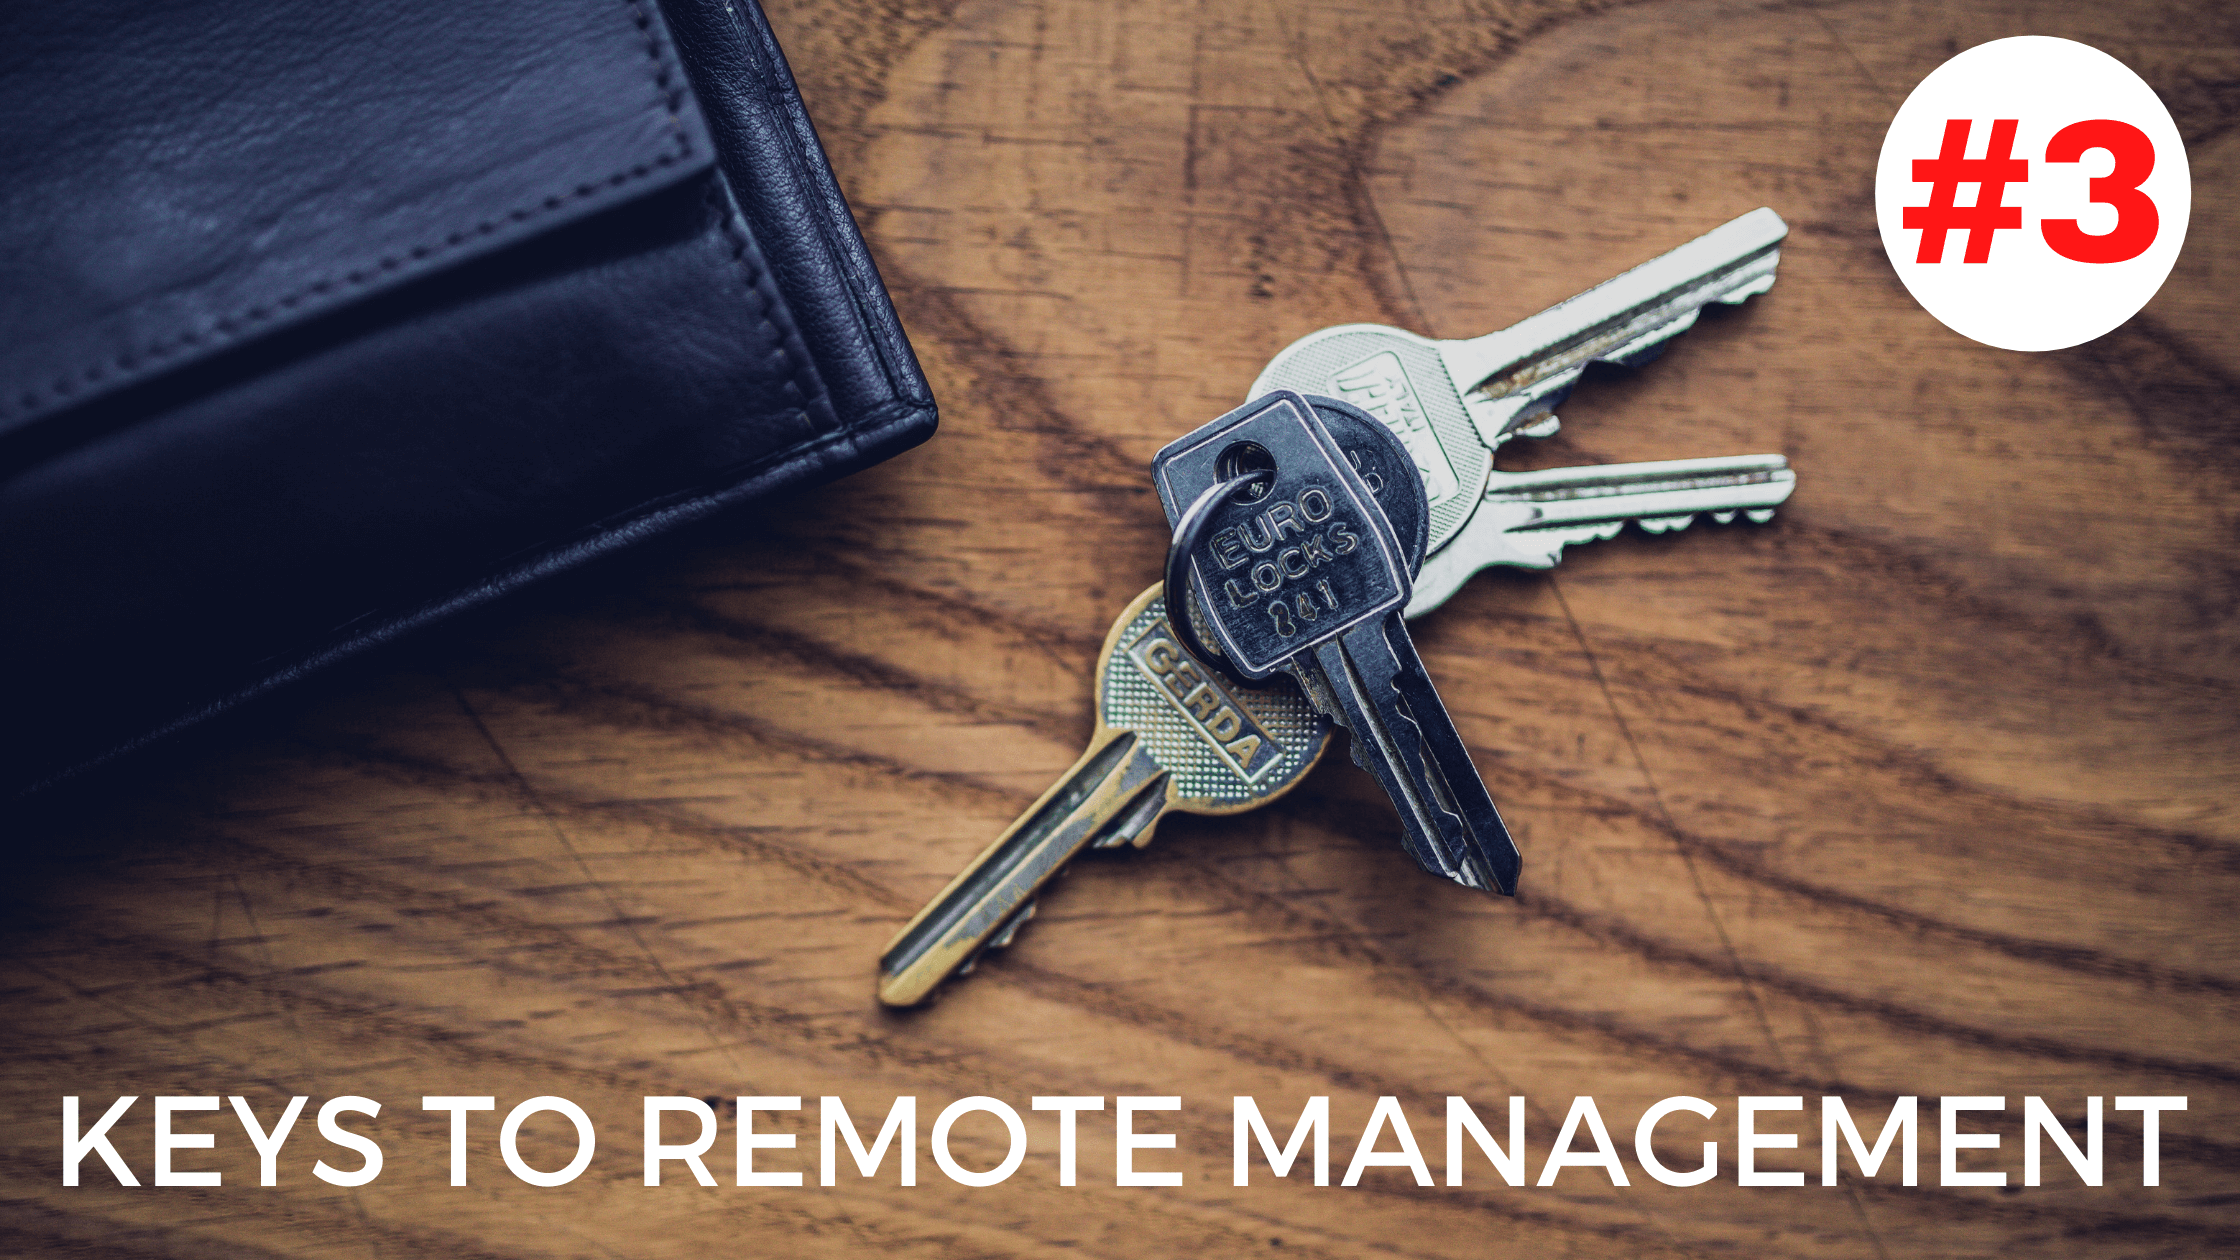 Keys to Remote Management – Key #3: Work with them